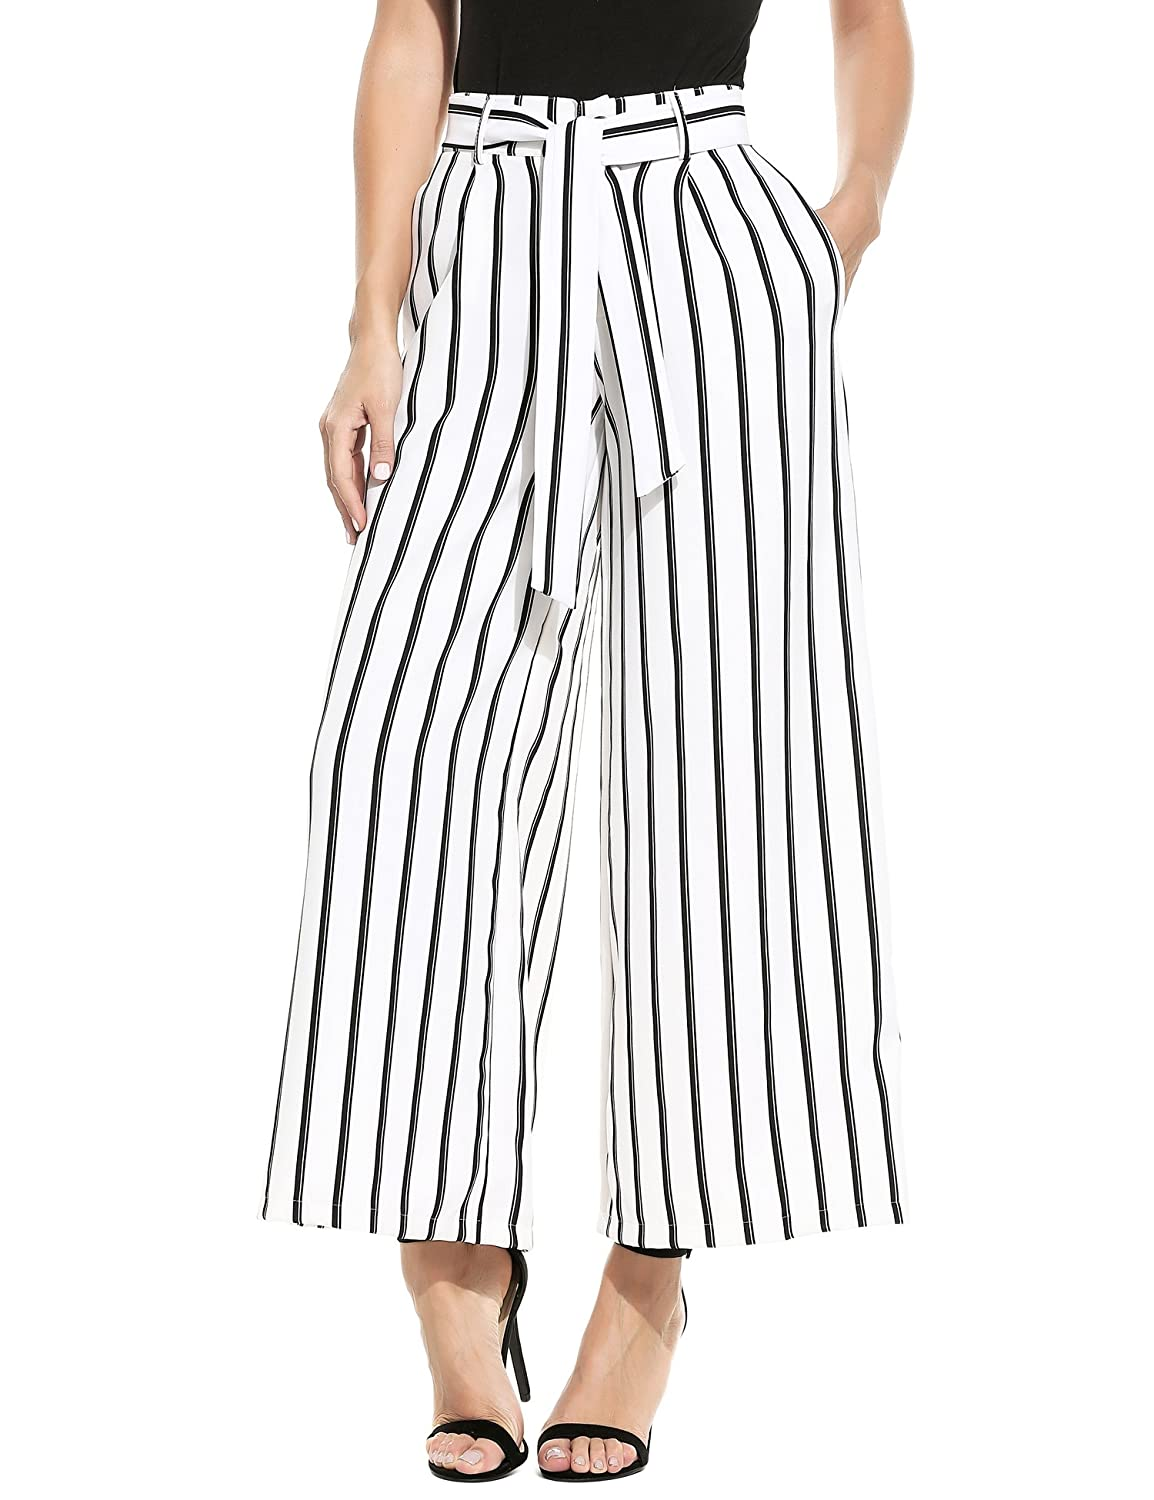 1930s Women's Pants and Beach Pajamas Zeagoo Womens Super Comfy Stripe Flowy Wide Leg High Waist Belted Palazzo Pants Capris $22.99 AT vintagedancer.com